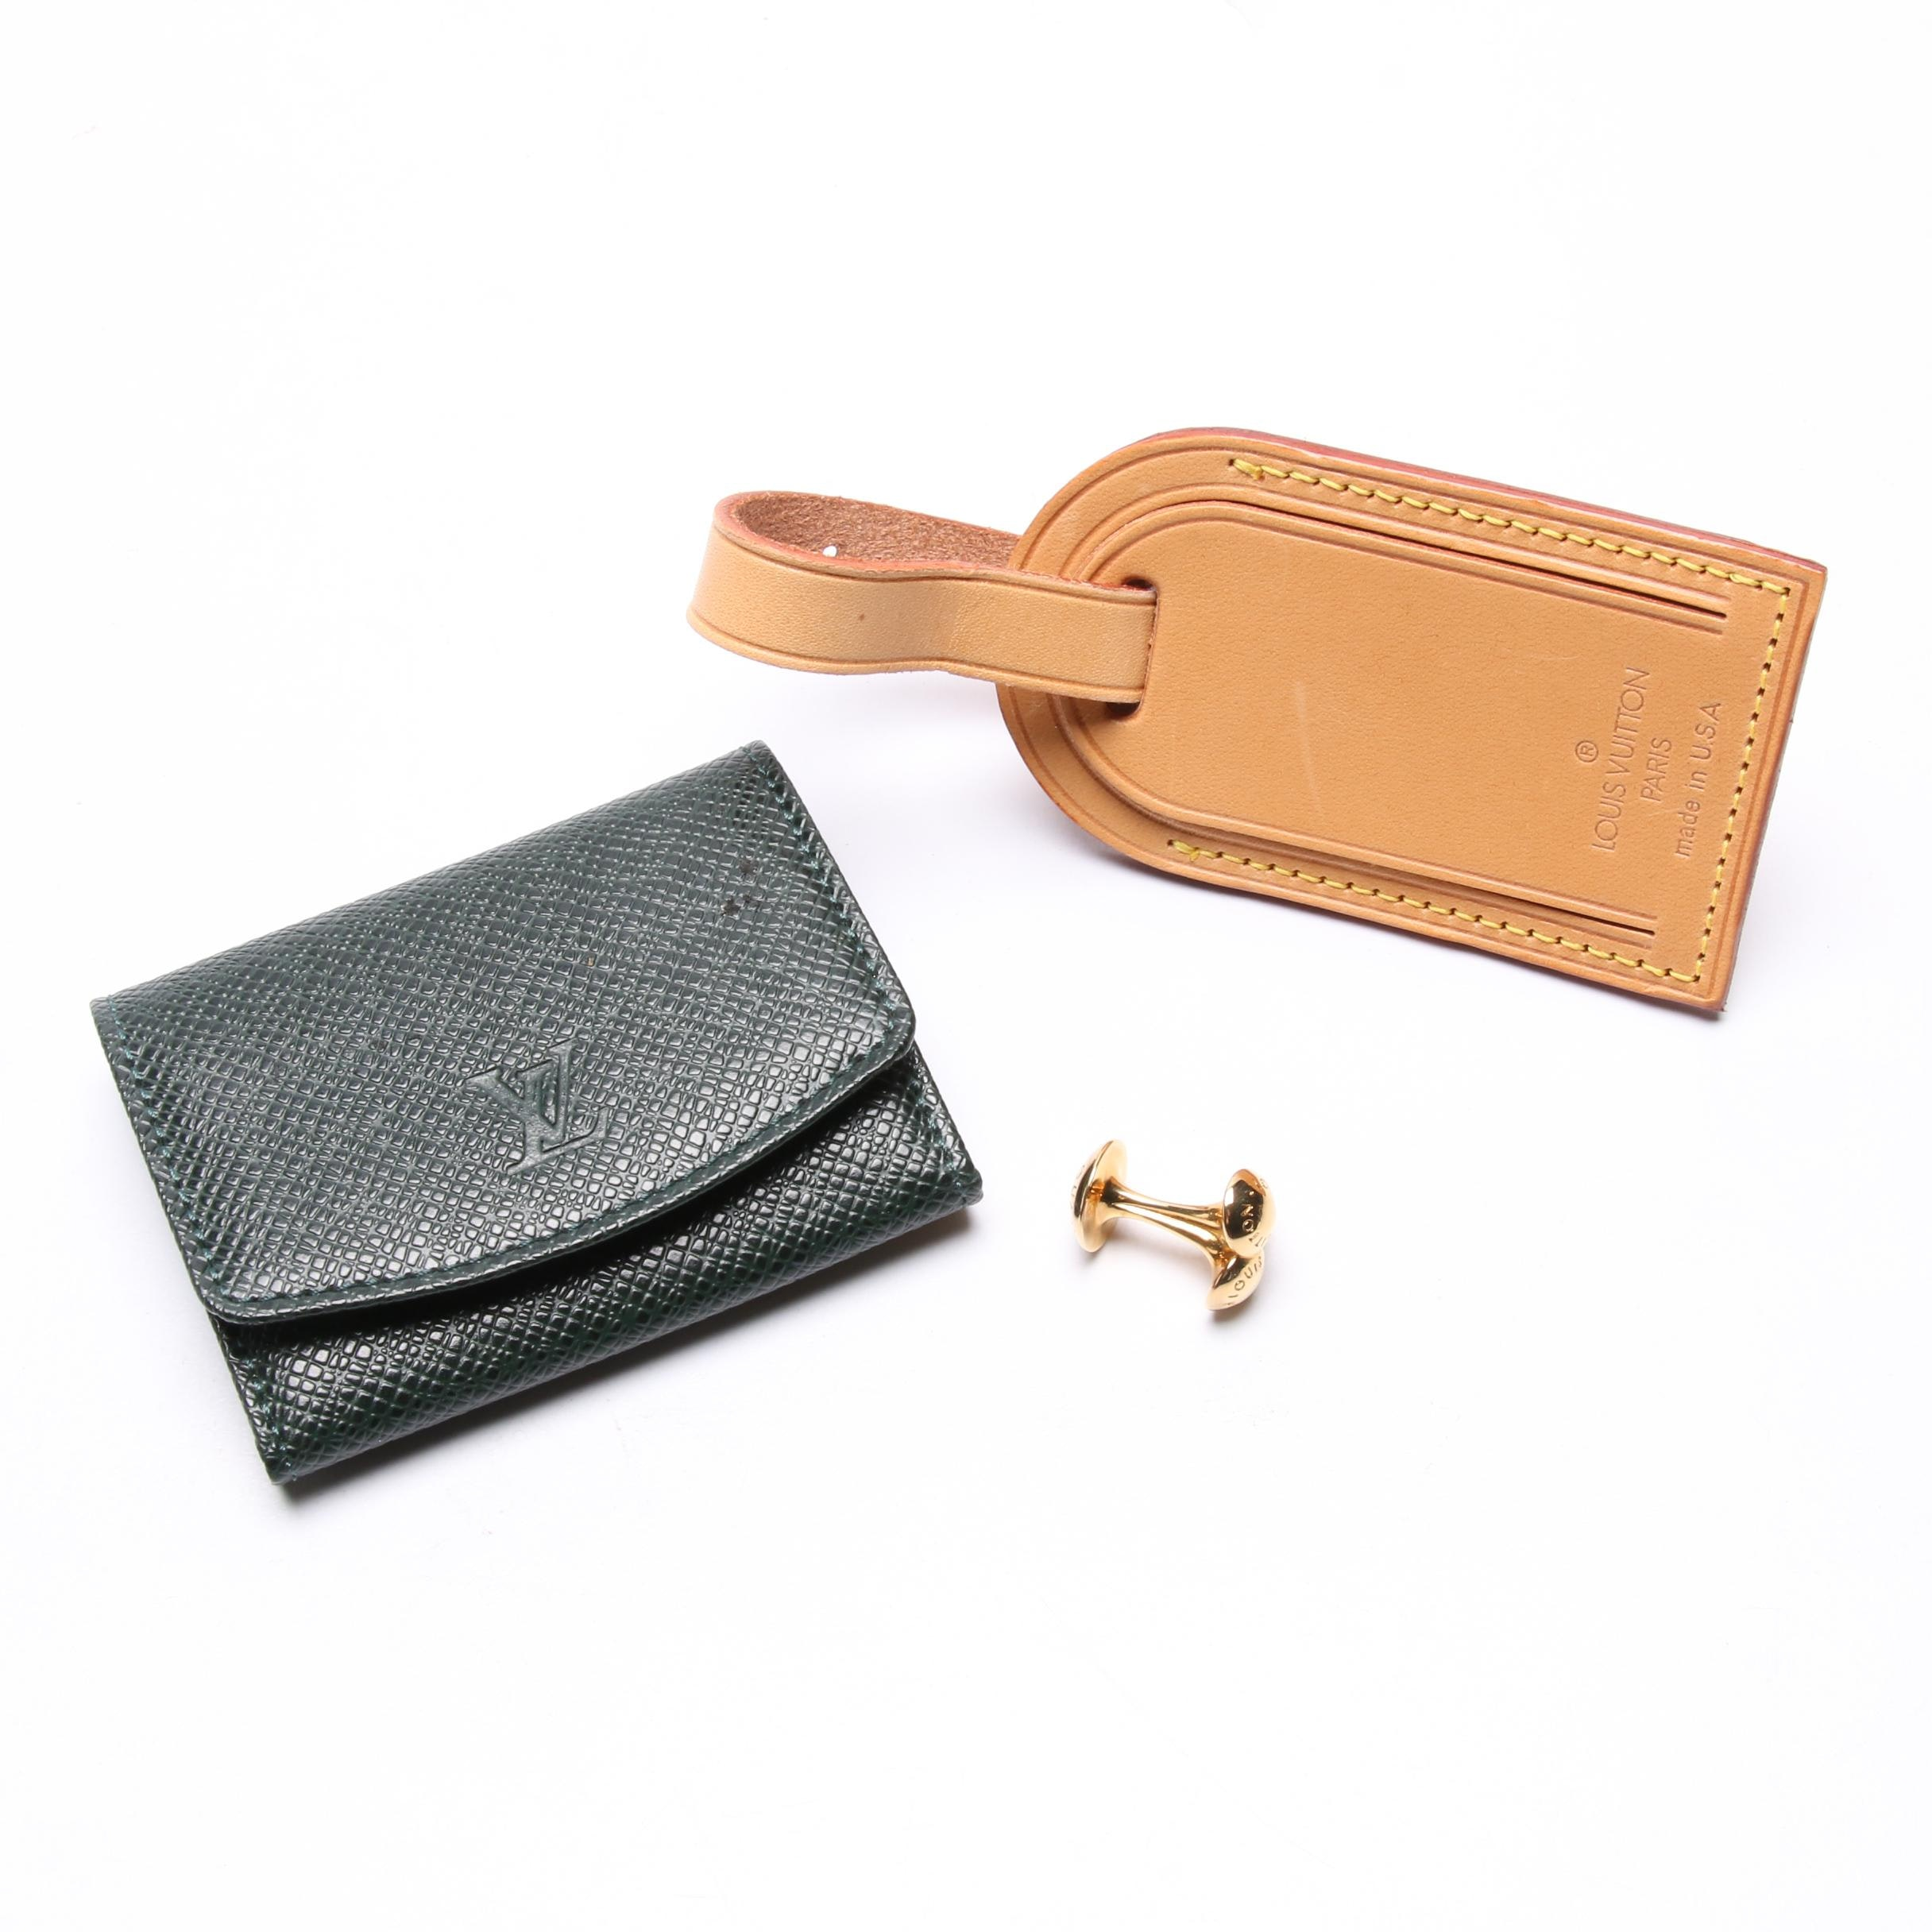 Louis Vuitton Vachetta Leather Hangtag and Green Taiga Leather Cufflink Case